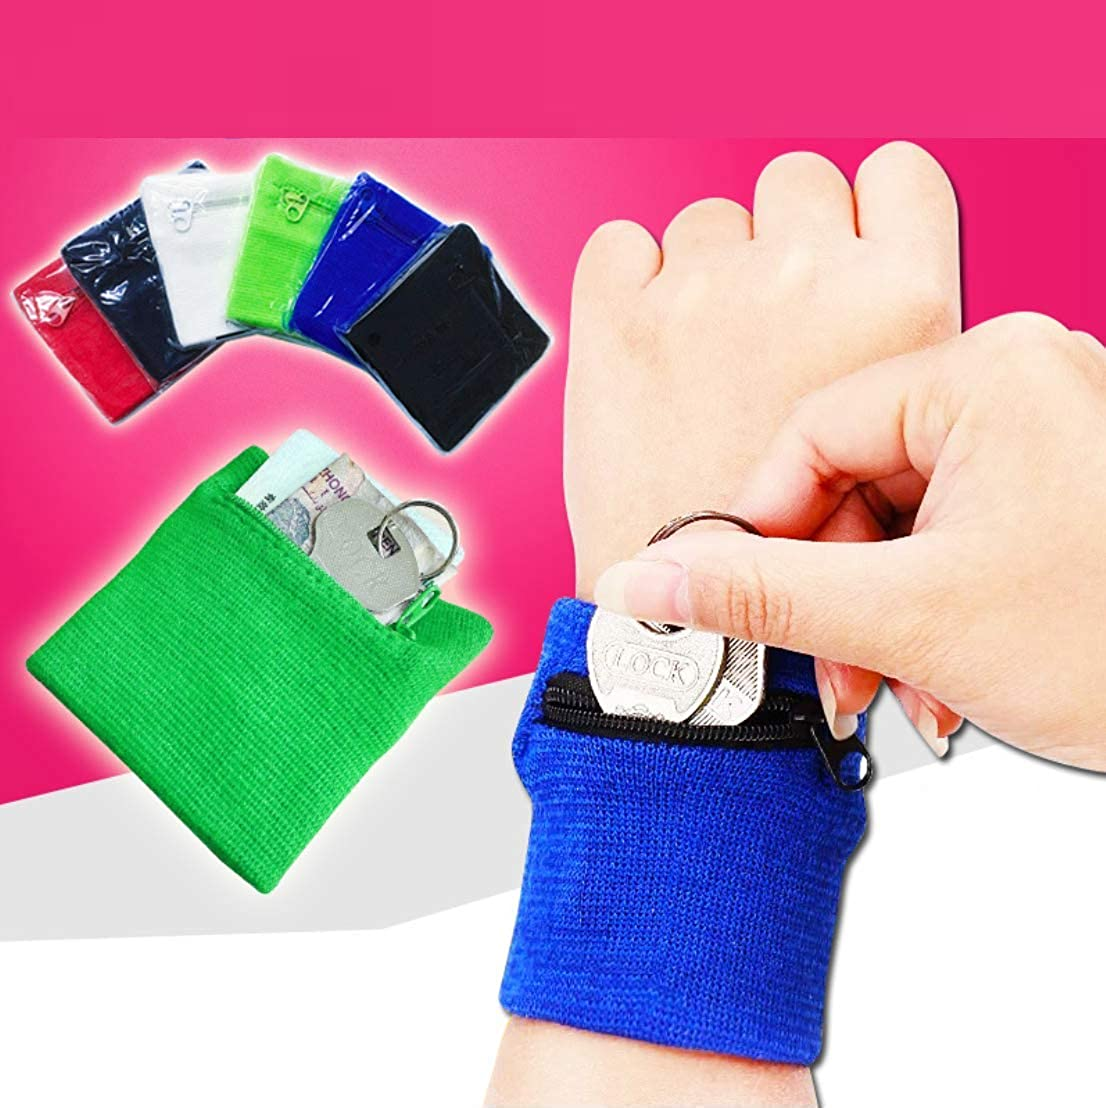 Chris.W 3Pairs Sports Wristband Zipper Sweatband Wrist Wallet Key Pocket for Women Men Running Cycling Jogging and Other Sports